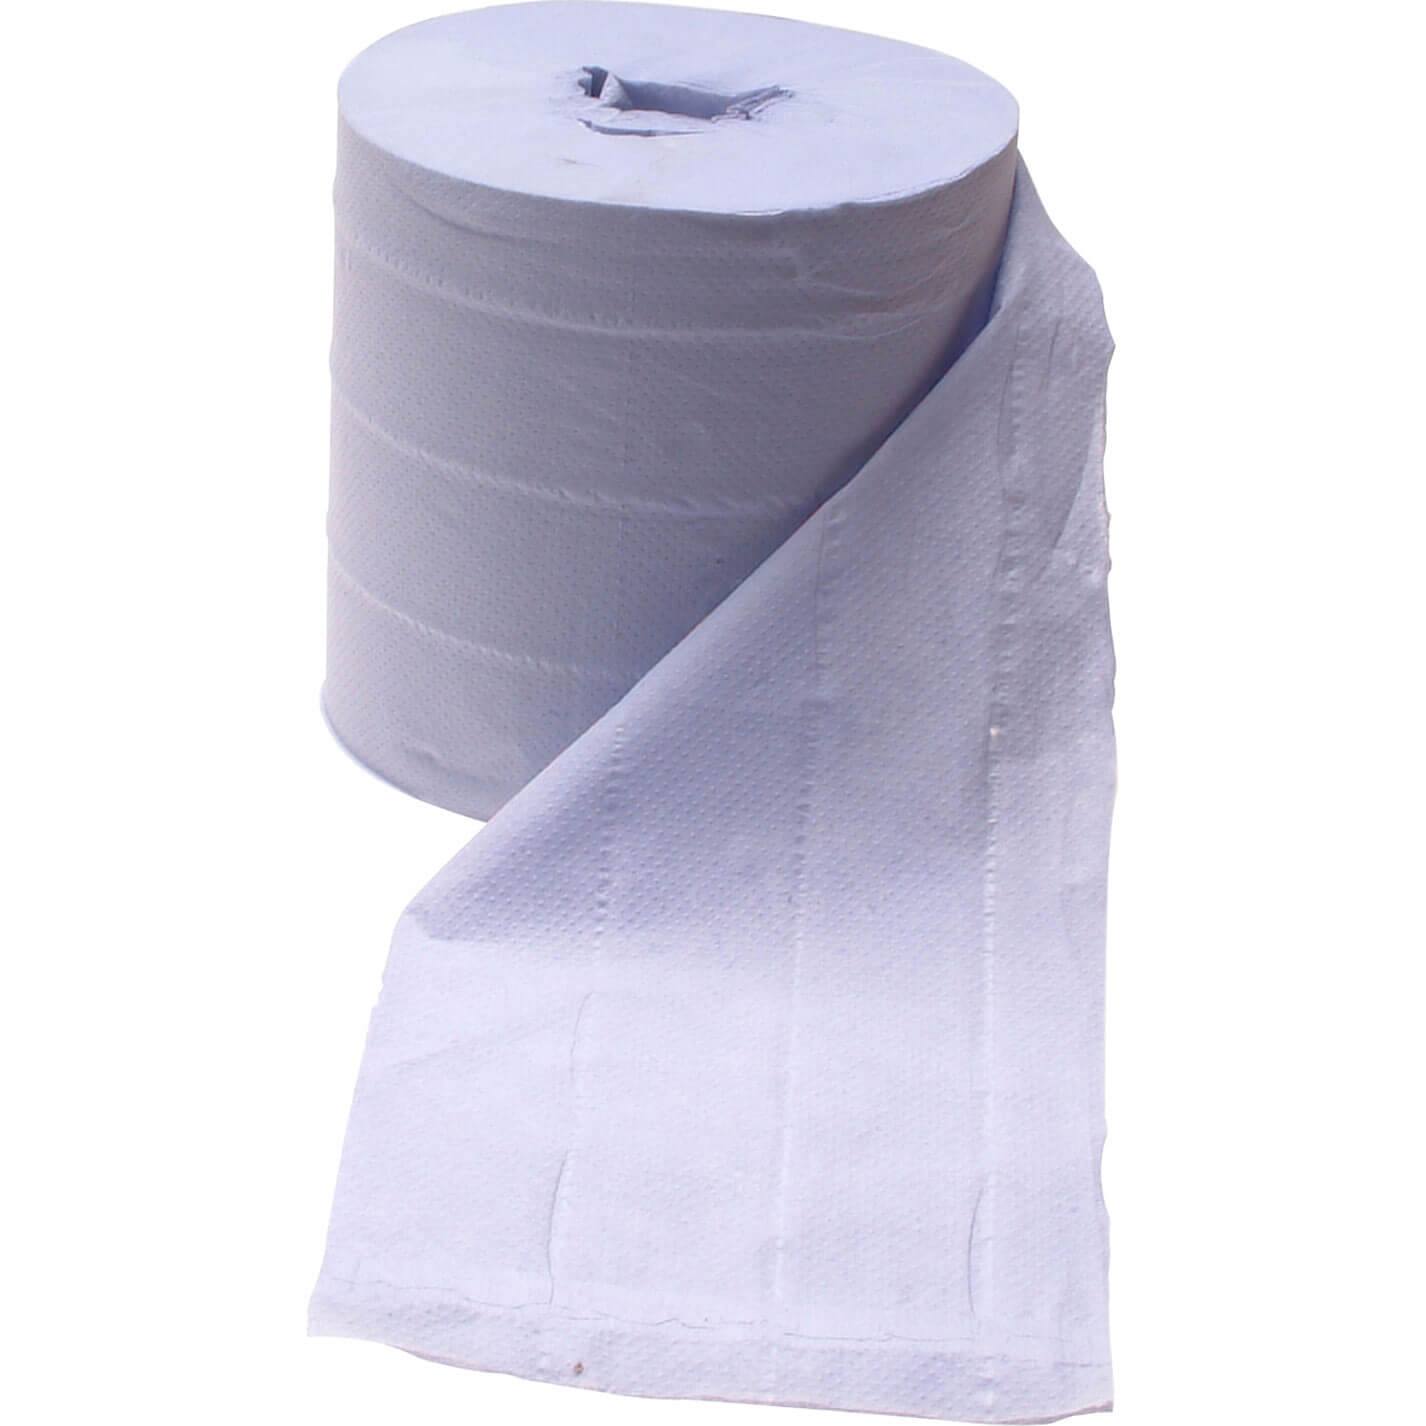 Image of Scan Paper Towel Wiping Roll 200mm x 150m